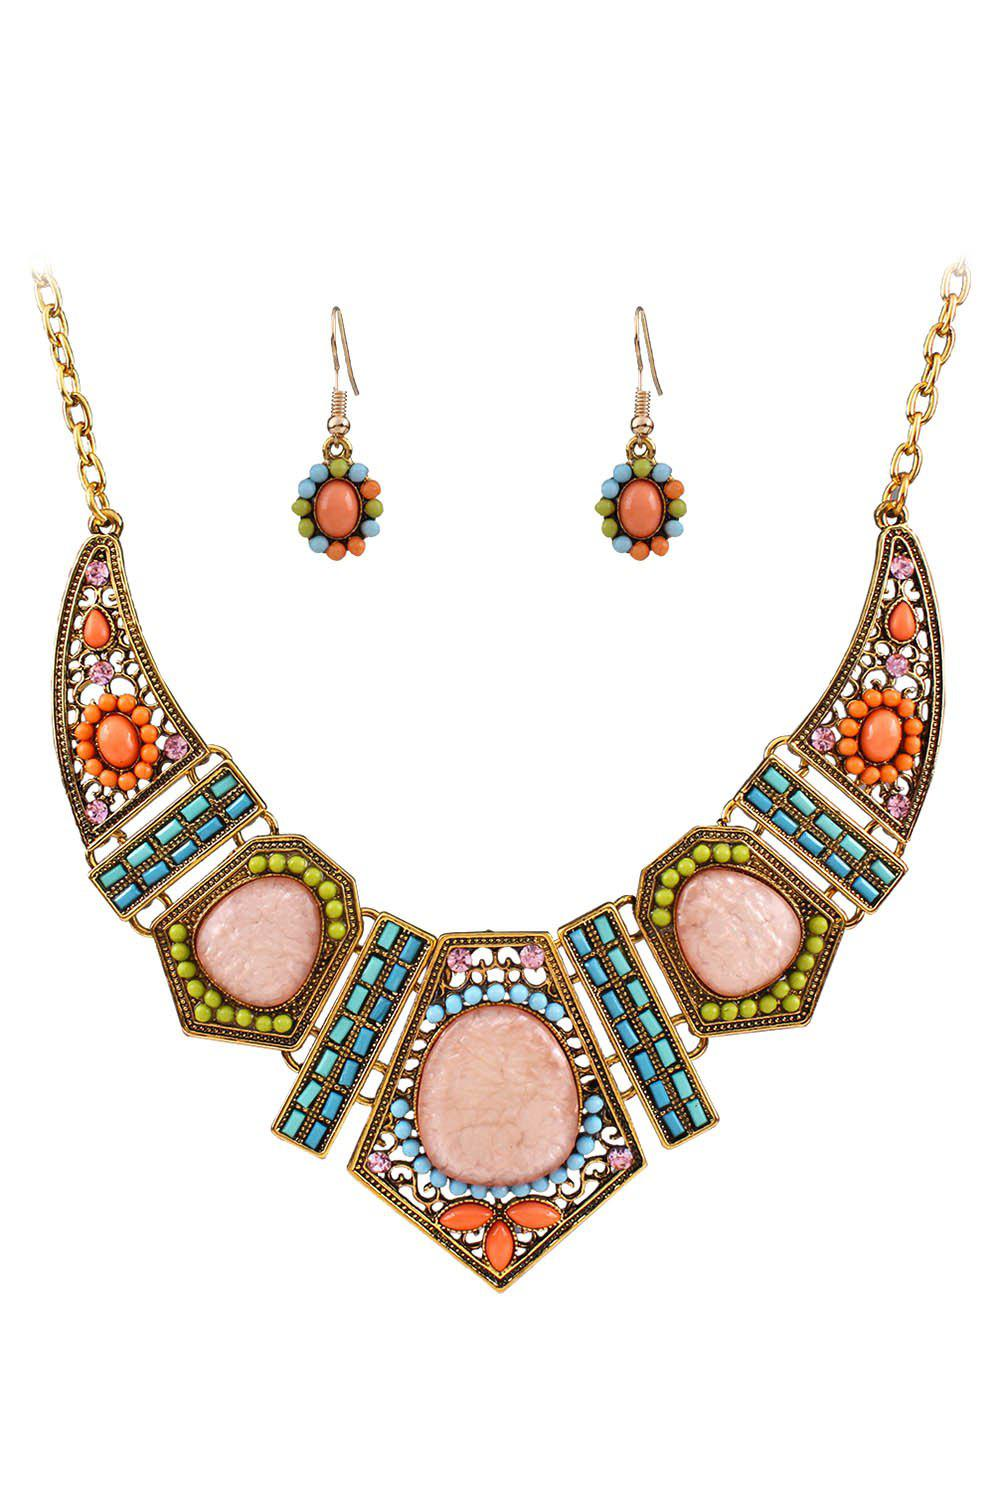 A Suit of Vintage Geometric Resin Necklace and Earrings - GOLDEN